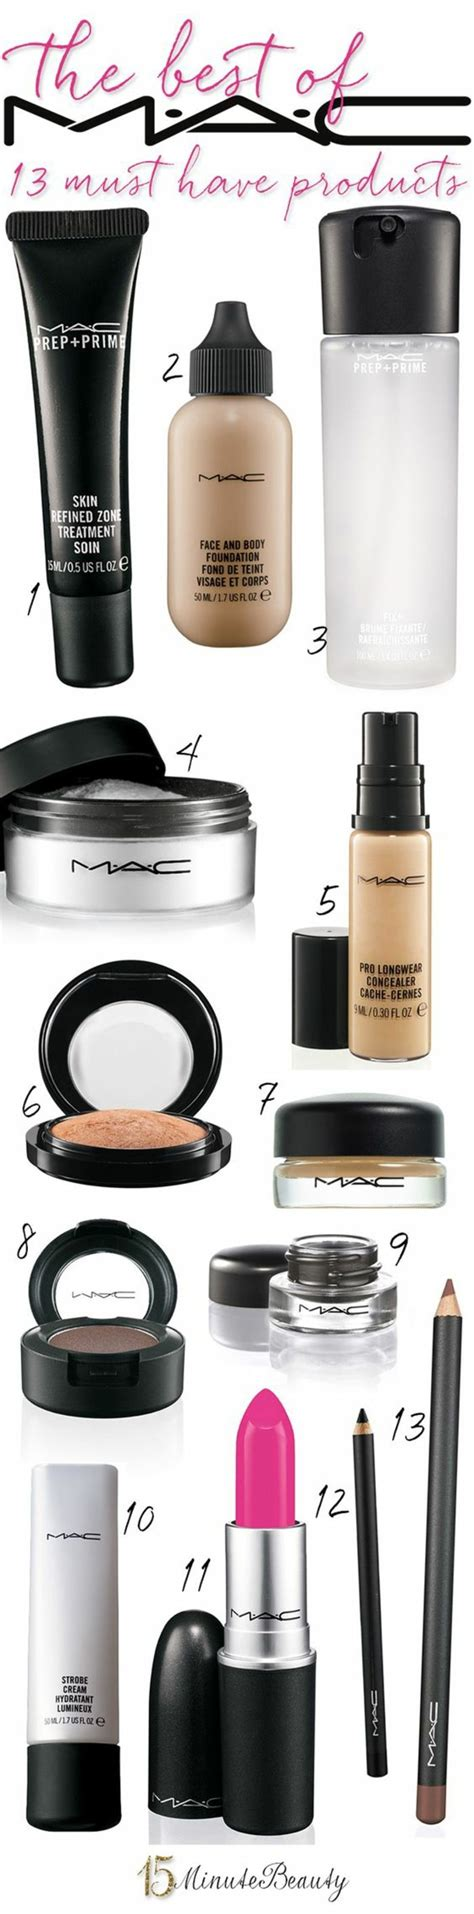 Mac Flashtronic Product 3 by Maquillage Mac Pas Cher